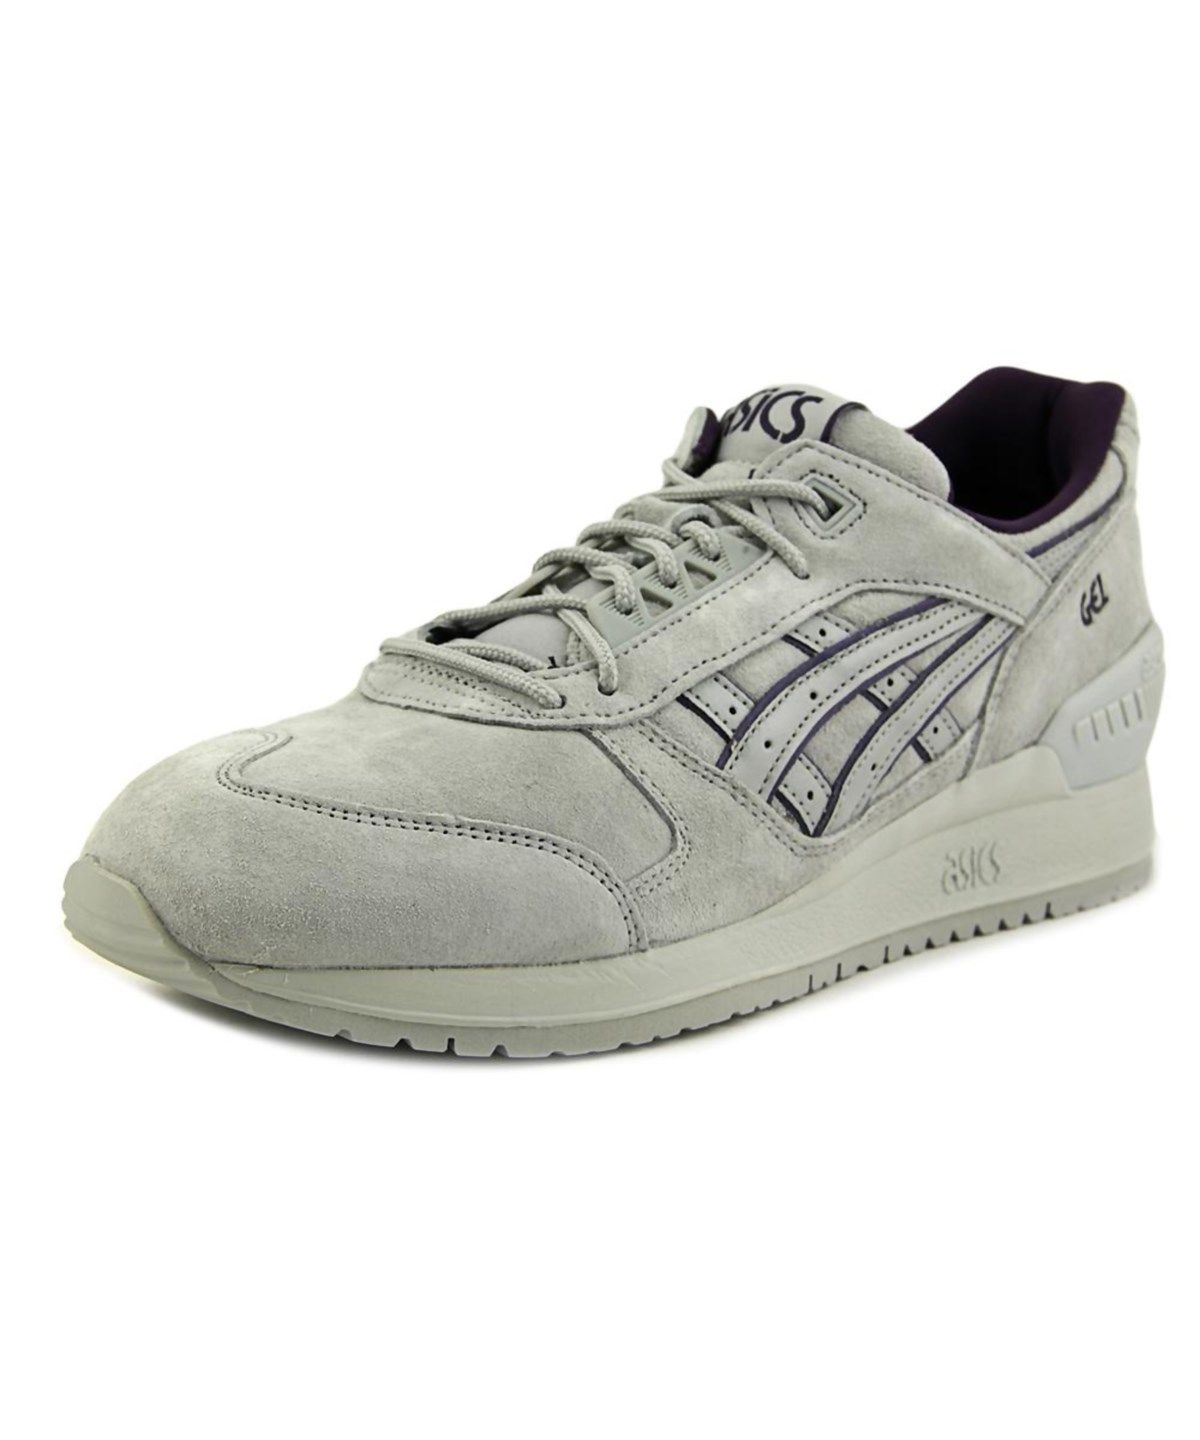 Latest Asics Gel Respector Round Toe Suede Sneakers Grey For Men Sale